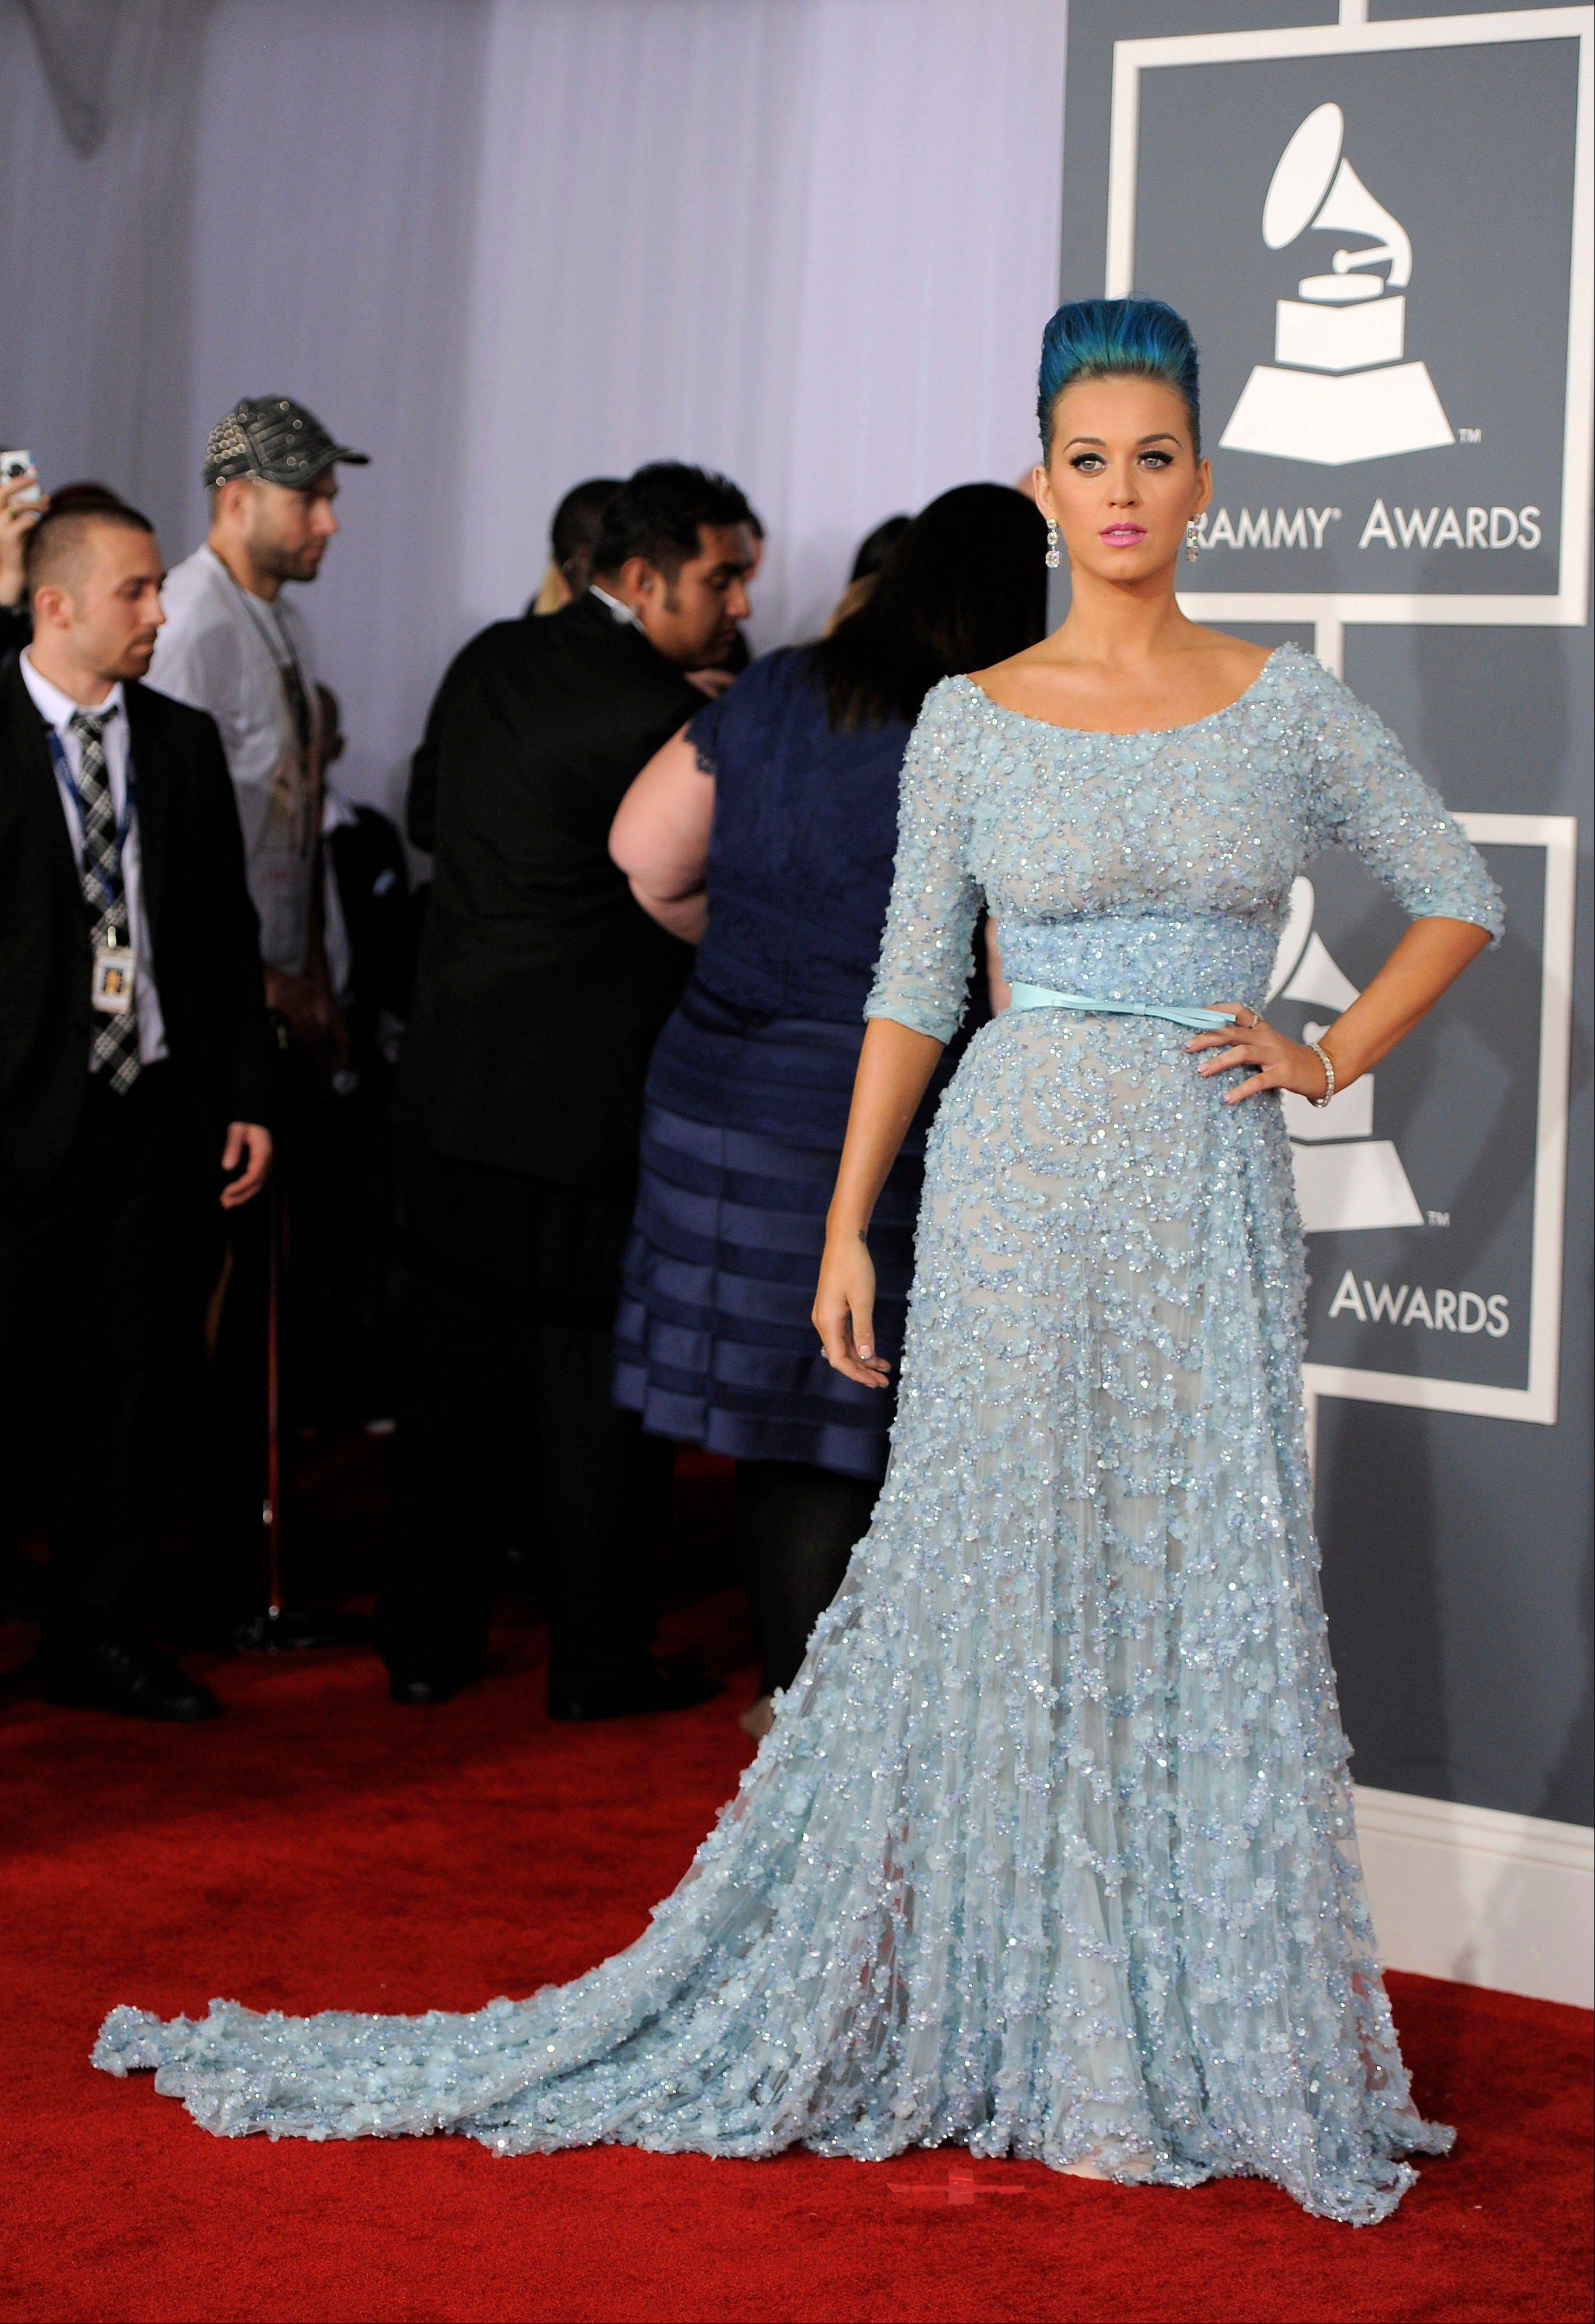 Katy Perry arrives Sunday at the 54th annual Grammy Awards in Los Angeles.